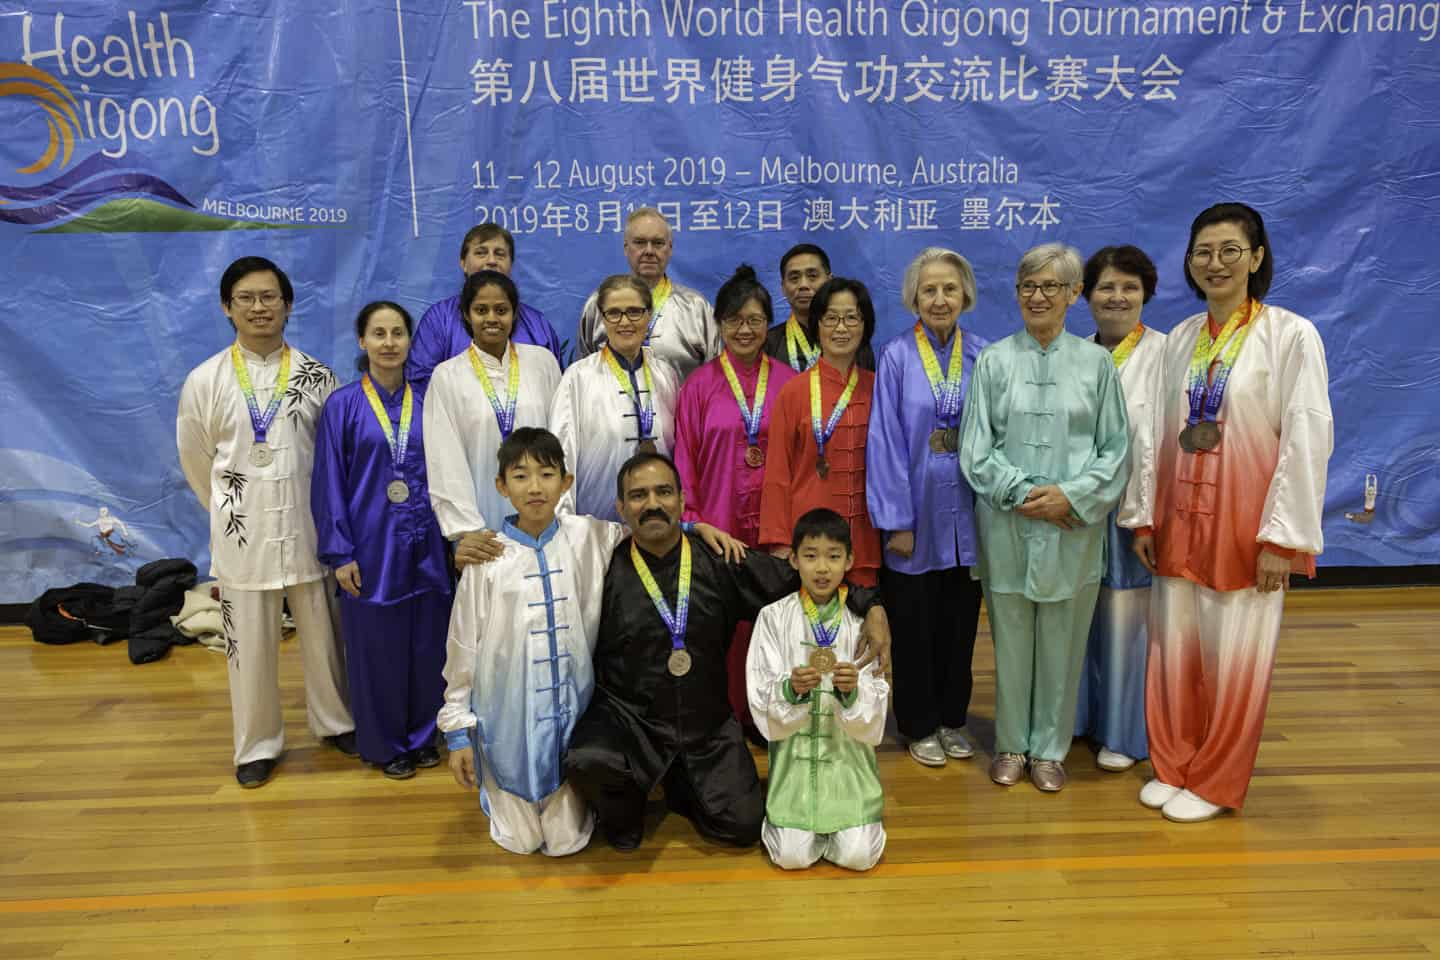 8th World Health Qigong Tournament and Exchange